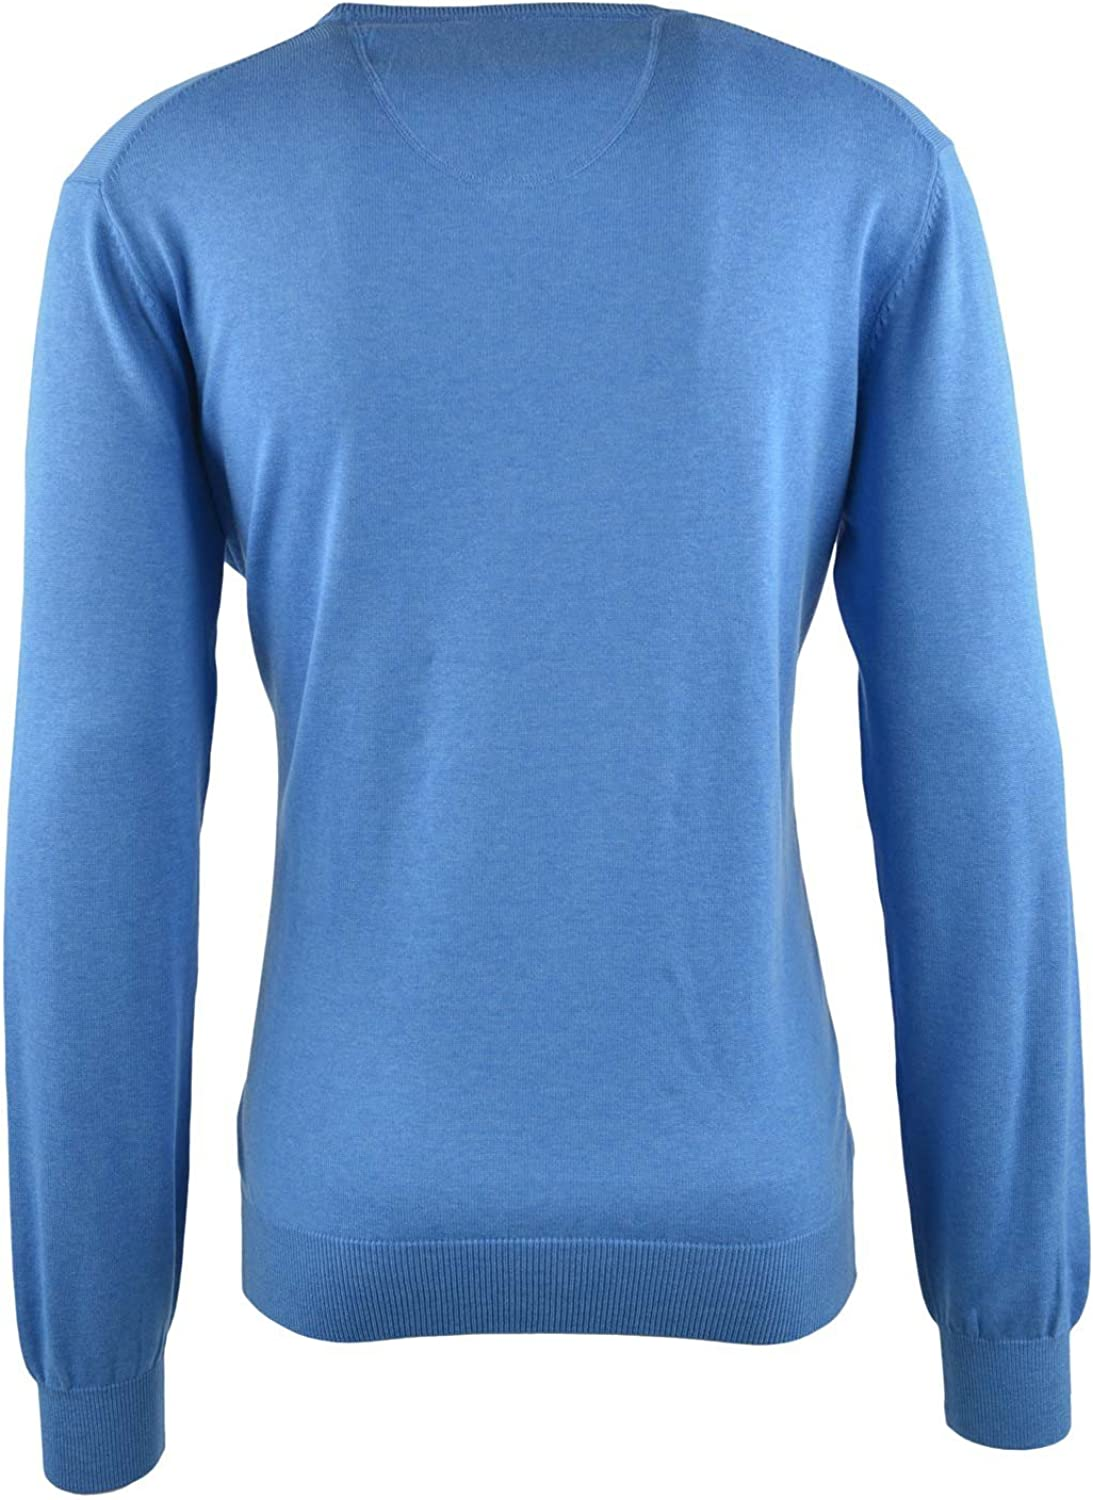 FYNCH-HATTON Herren V-Neck Pullover Blau (Horizon 611)